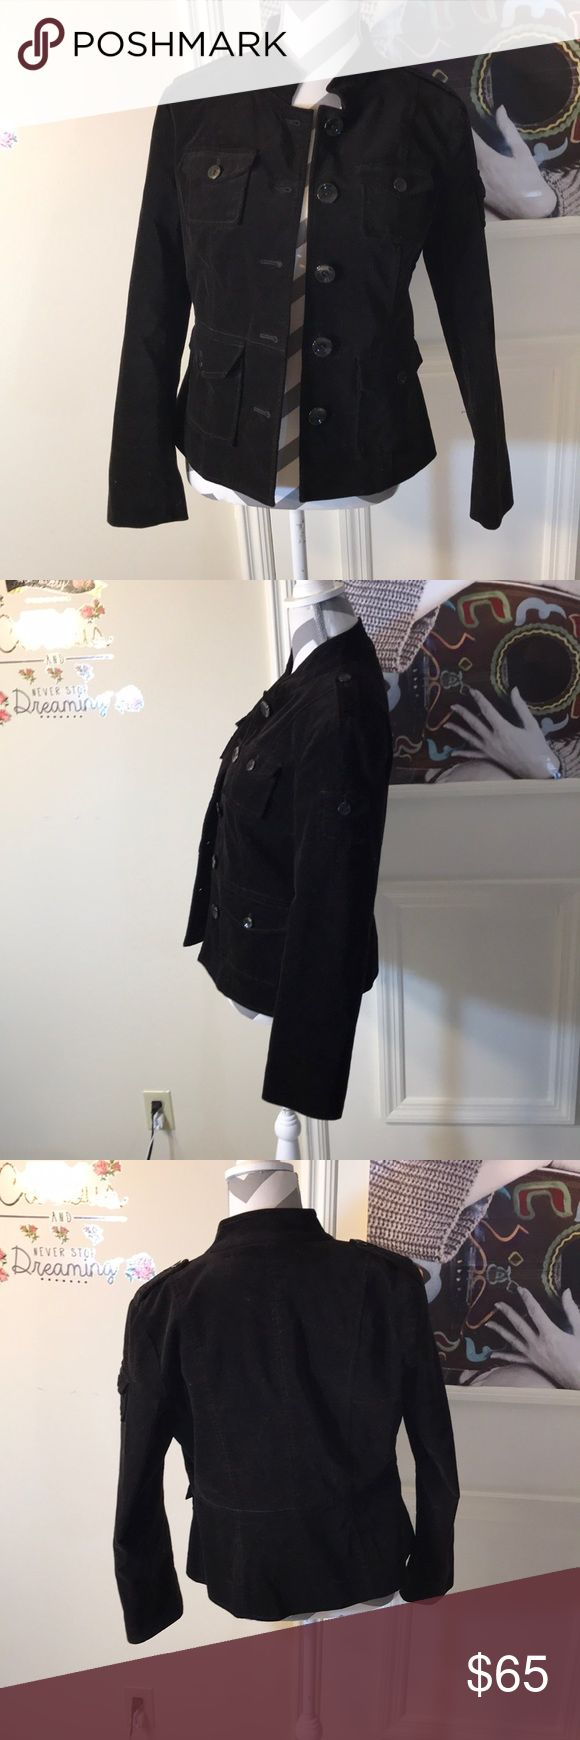 Kenneth Cole All Black Velvet Button Up Jacket Size 4 Kenneth Cole  VELVET!!!! (It's really in this season!!!) Lots of buttons & Pockets (all buttons are intact!)  Super stylish & hip! Kenneth Cole Jackets & Coats Pea Coats